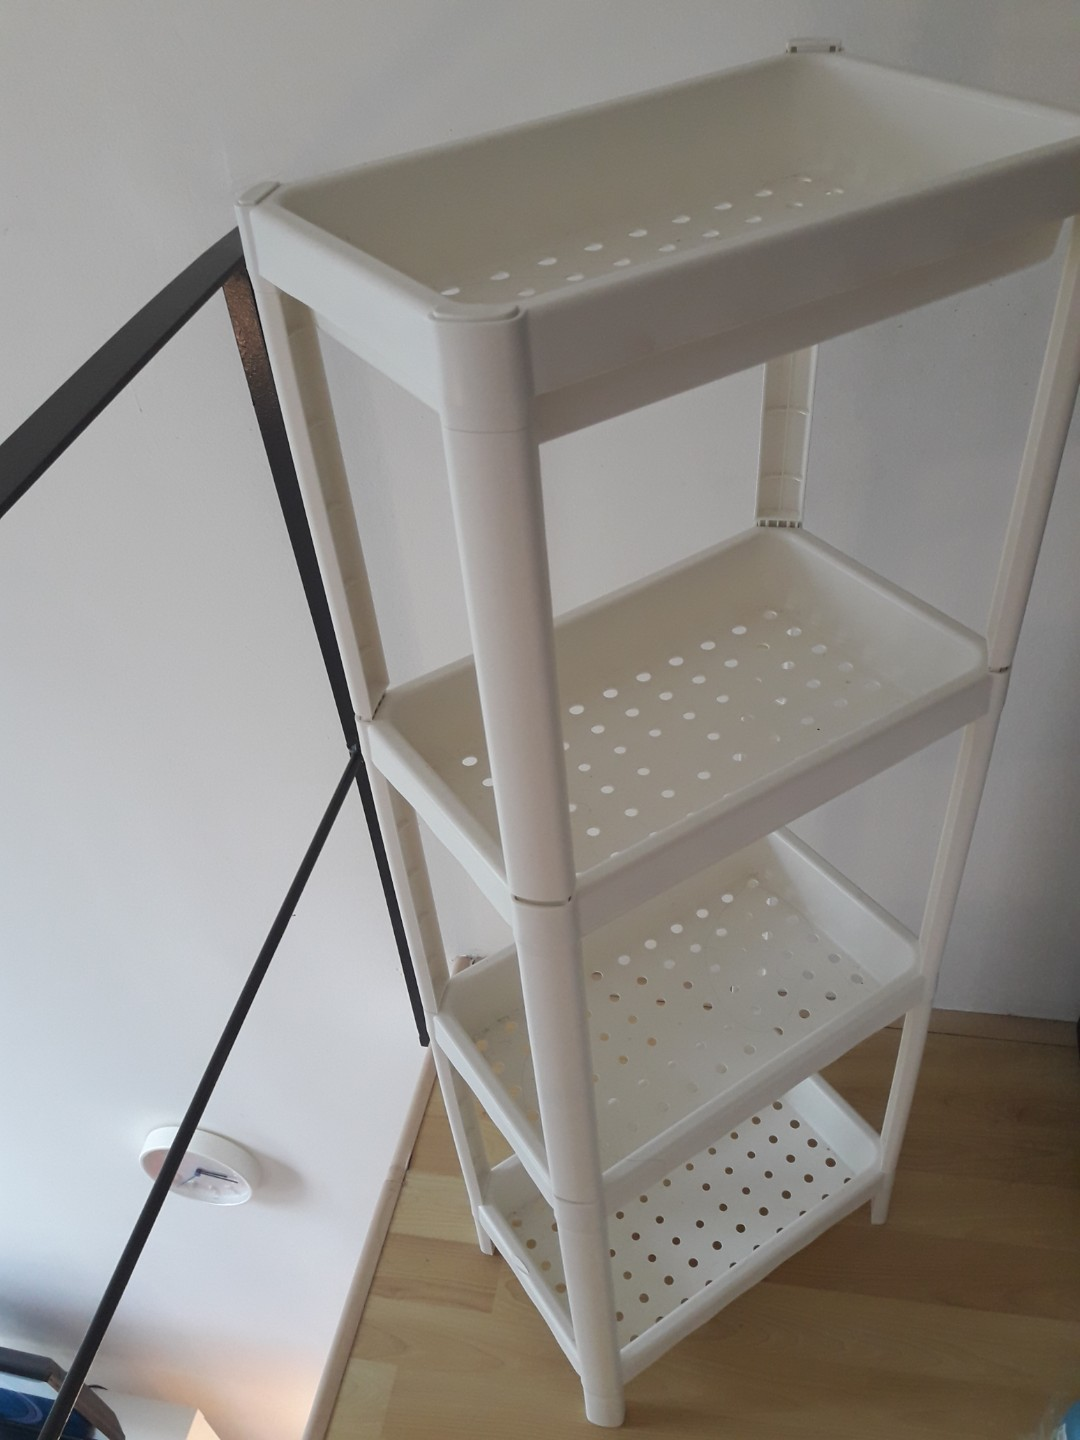 Ikea Vesken Ikea Vesken Shelf Unit White